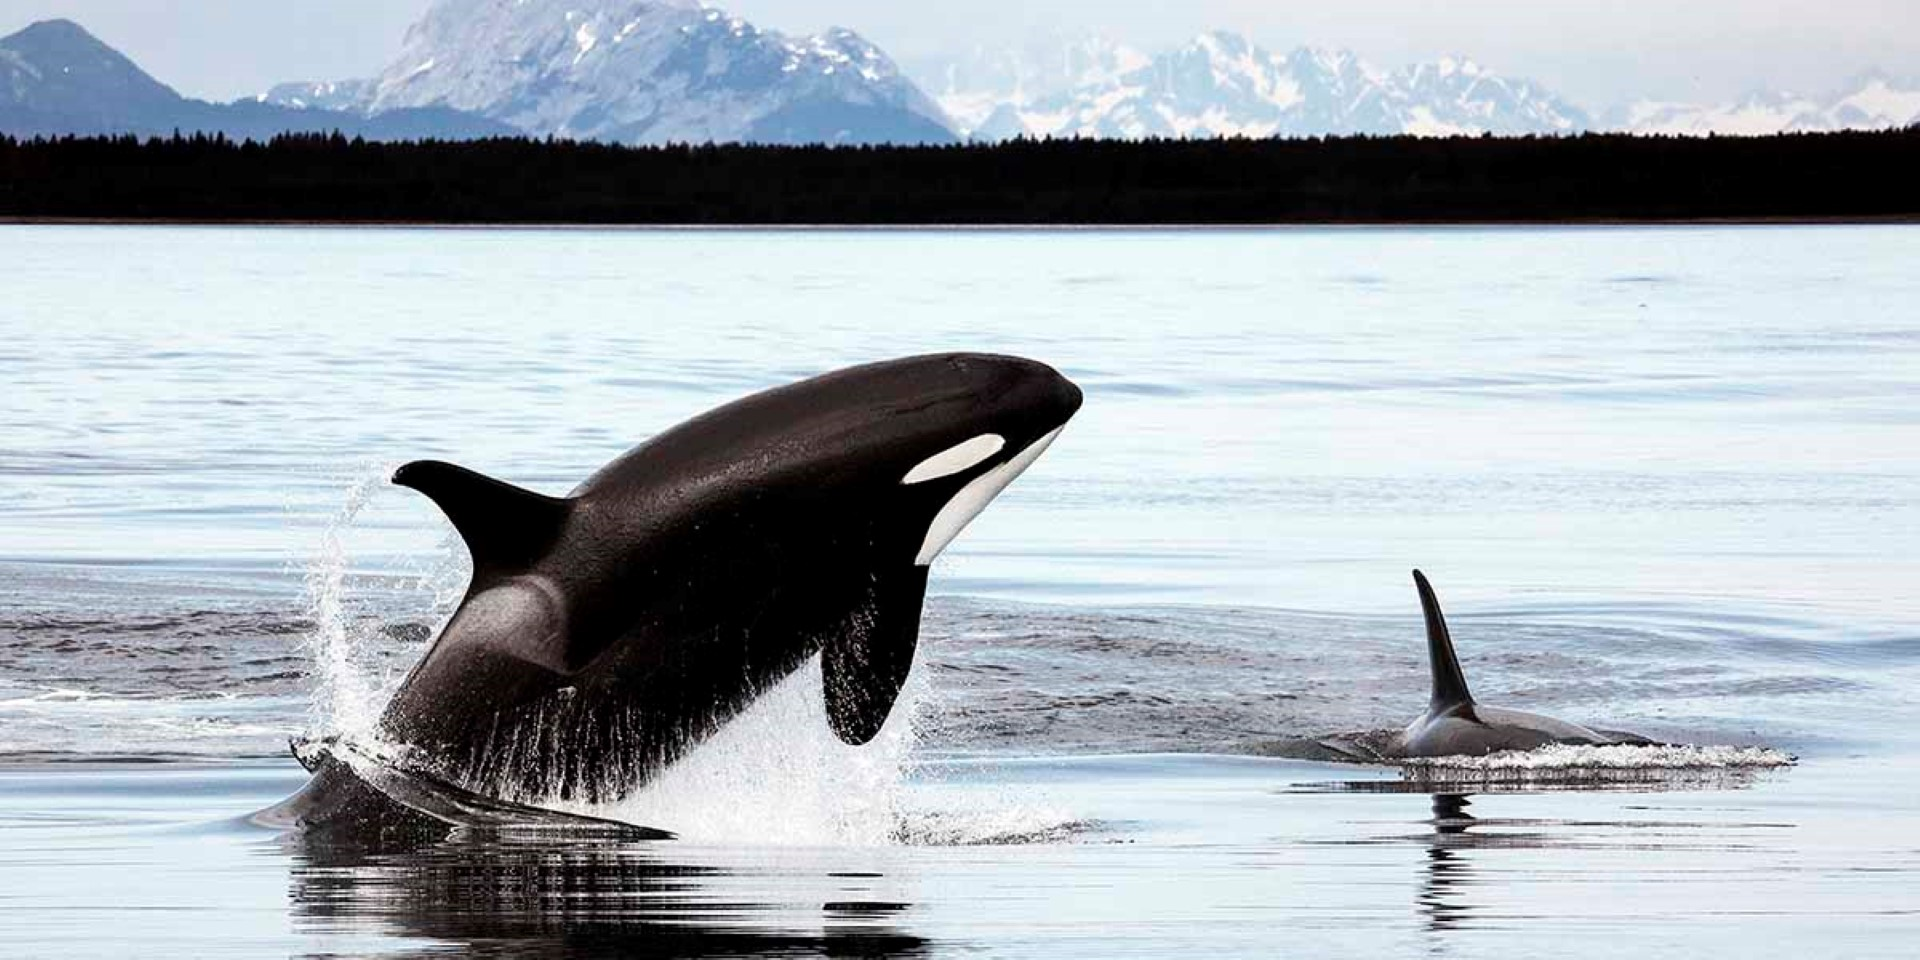 orcas_in_alaskachristopher-pmichel-cc-by-2_0_1200x600